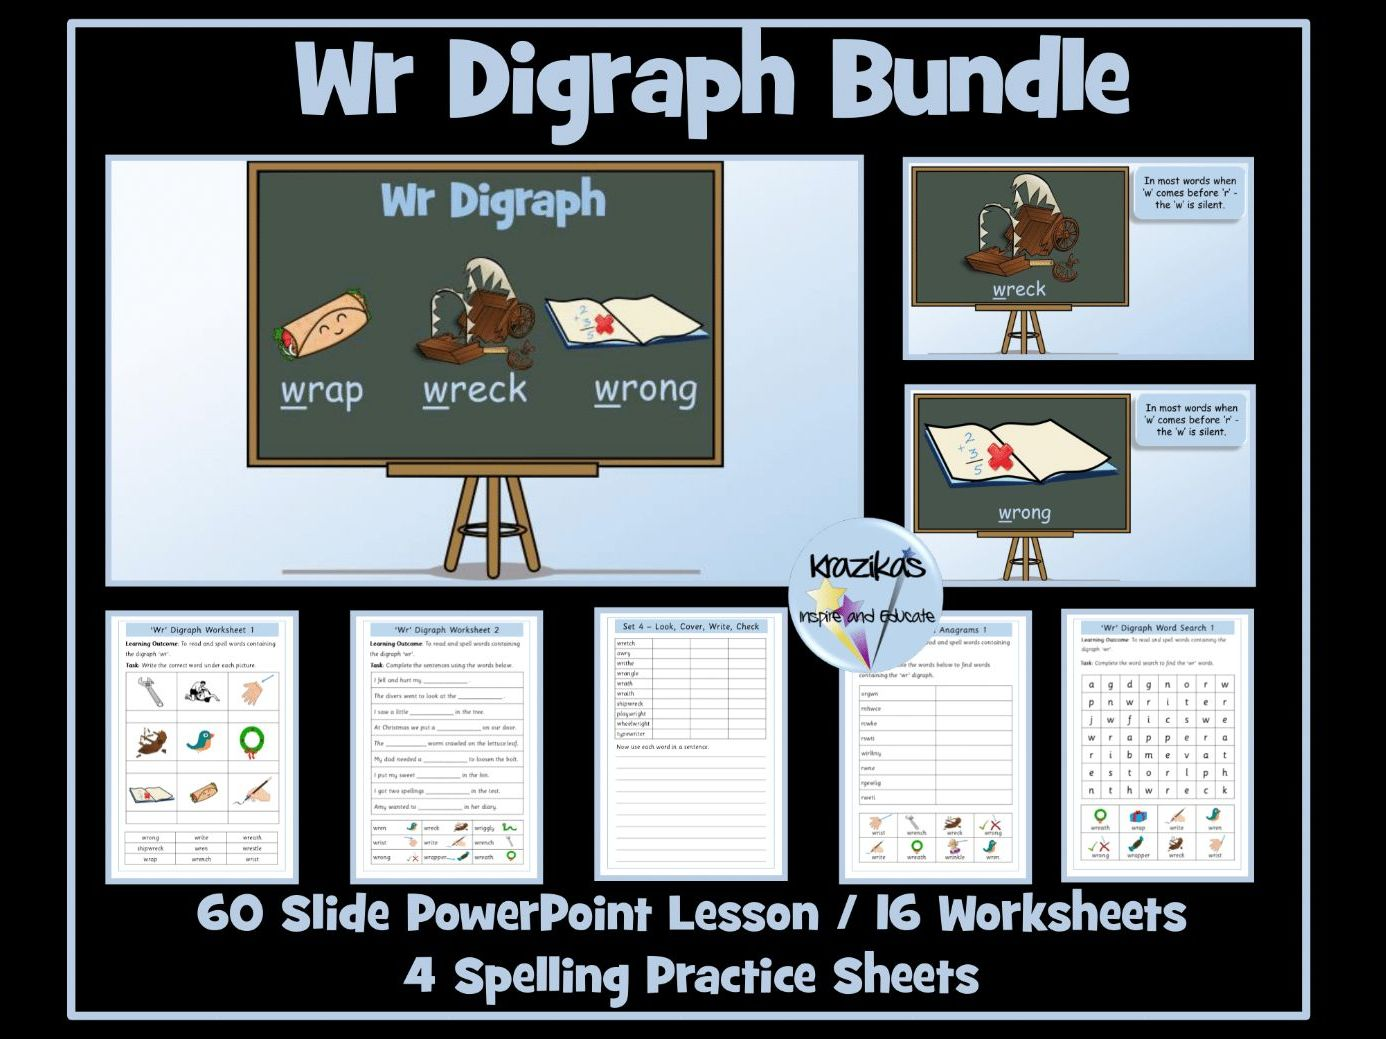 Wr Digraph